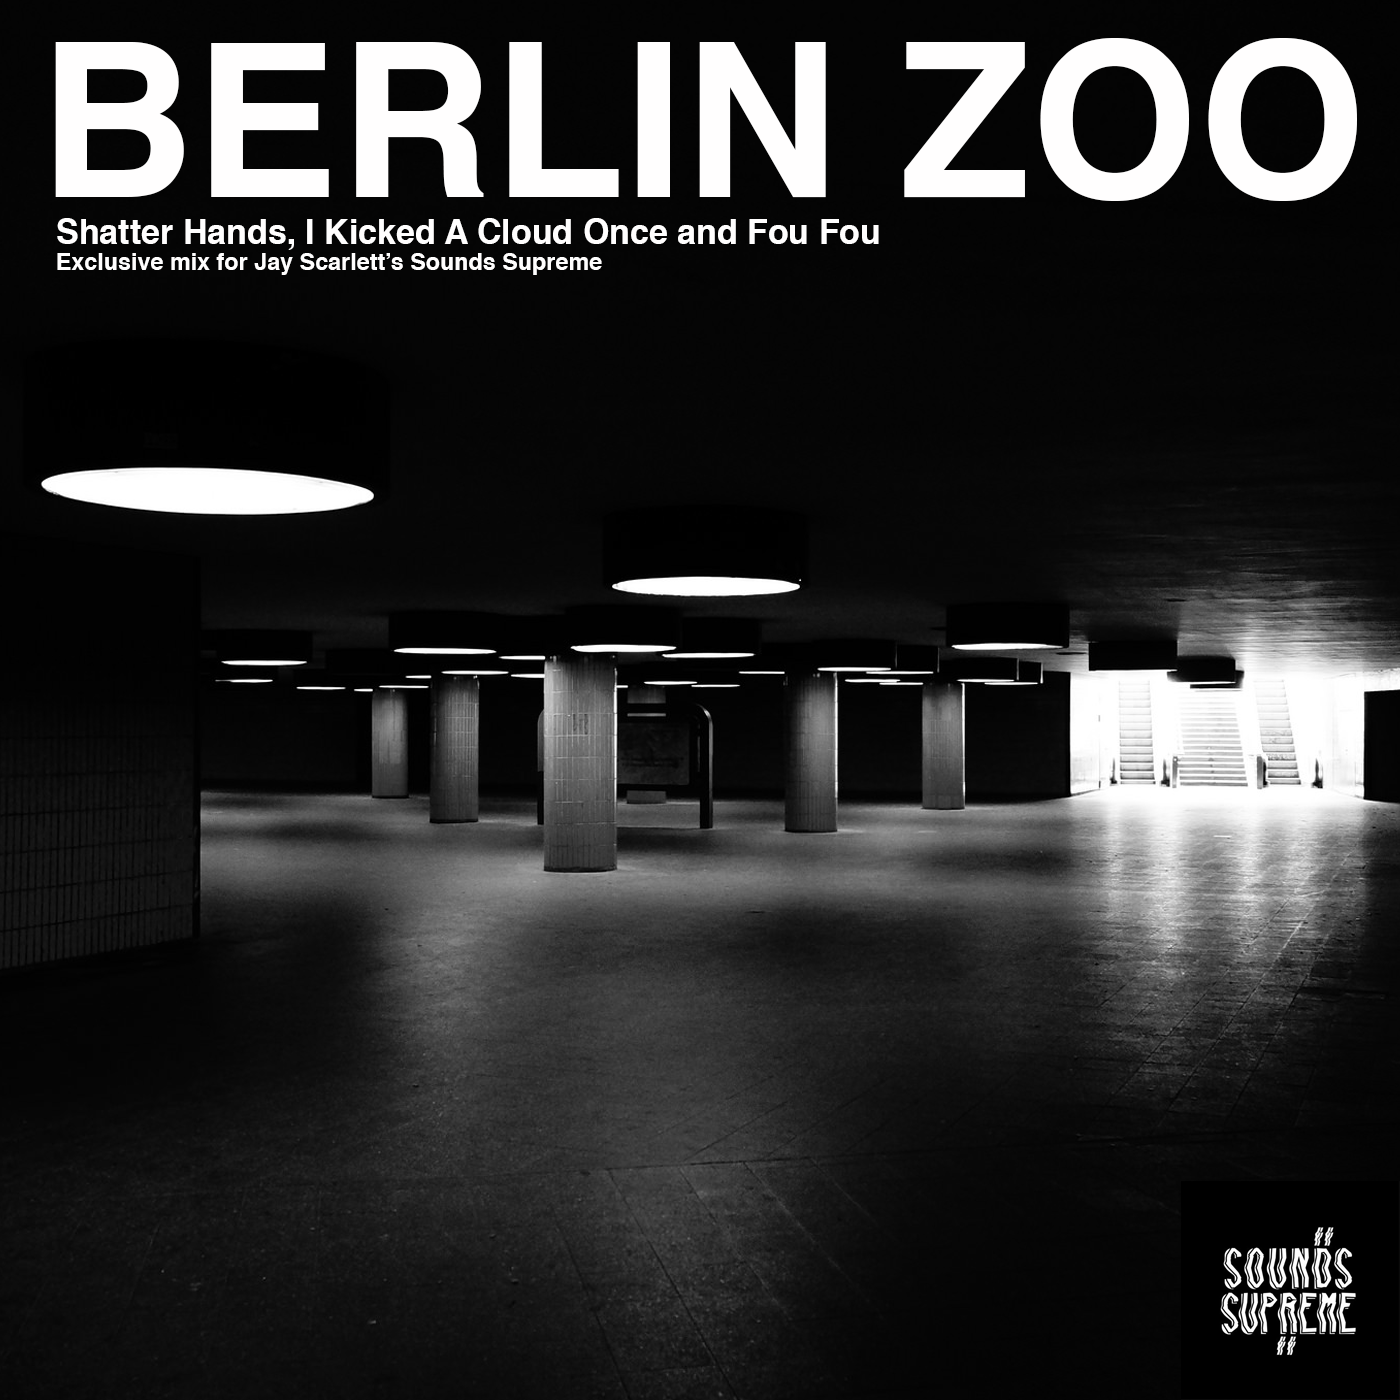 Berlin Zoo - Exclusively on Sounds Supreme